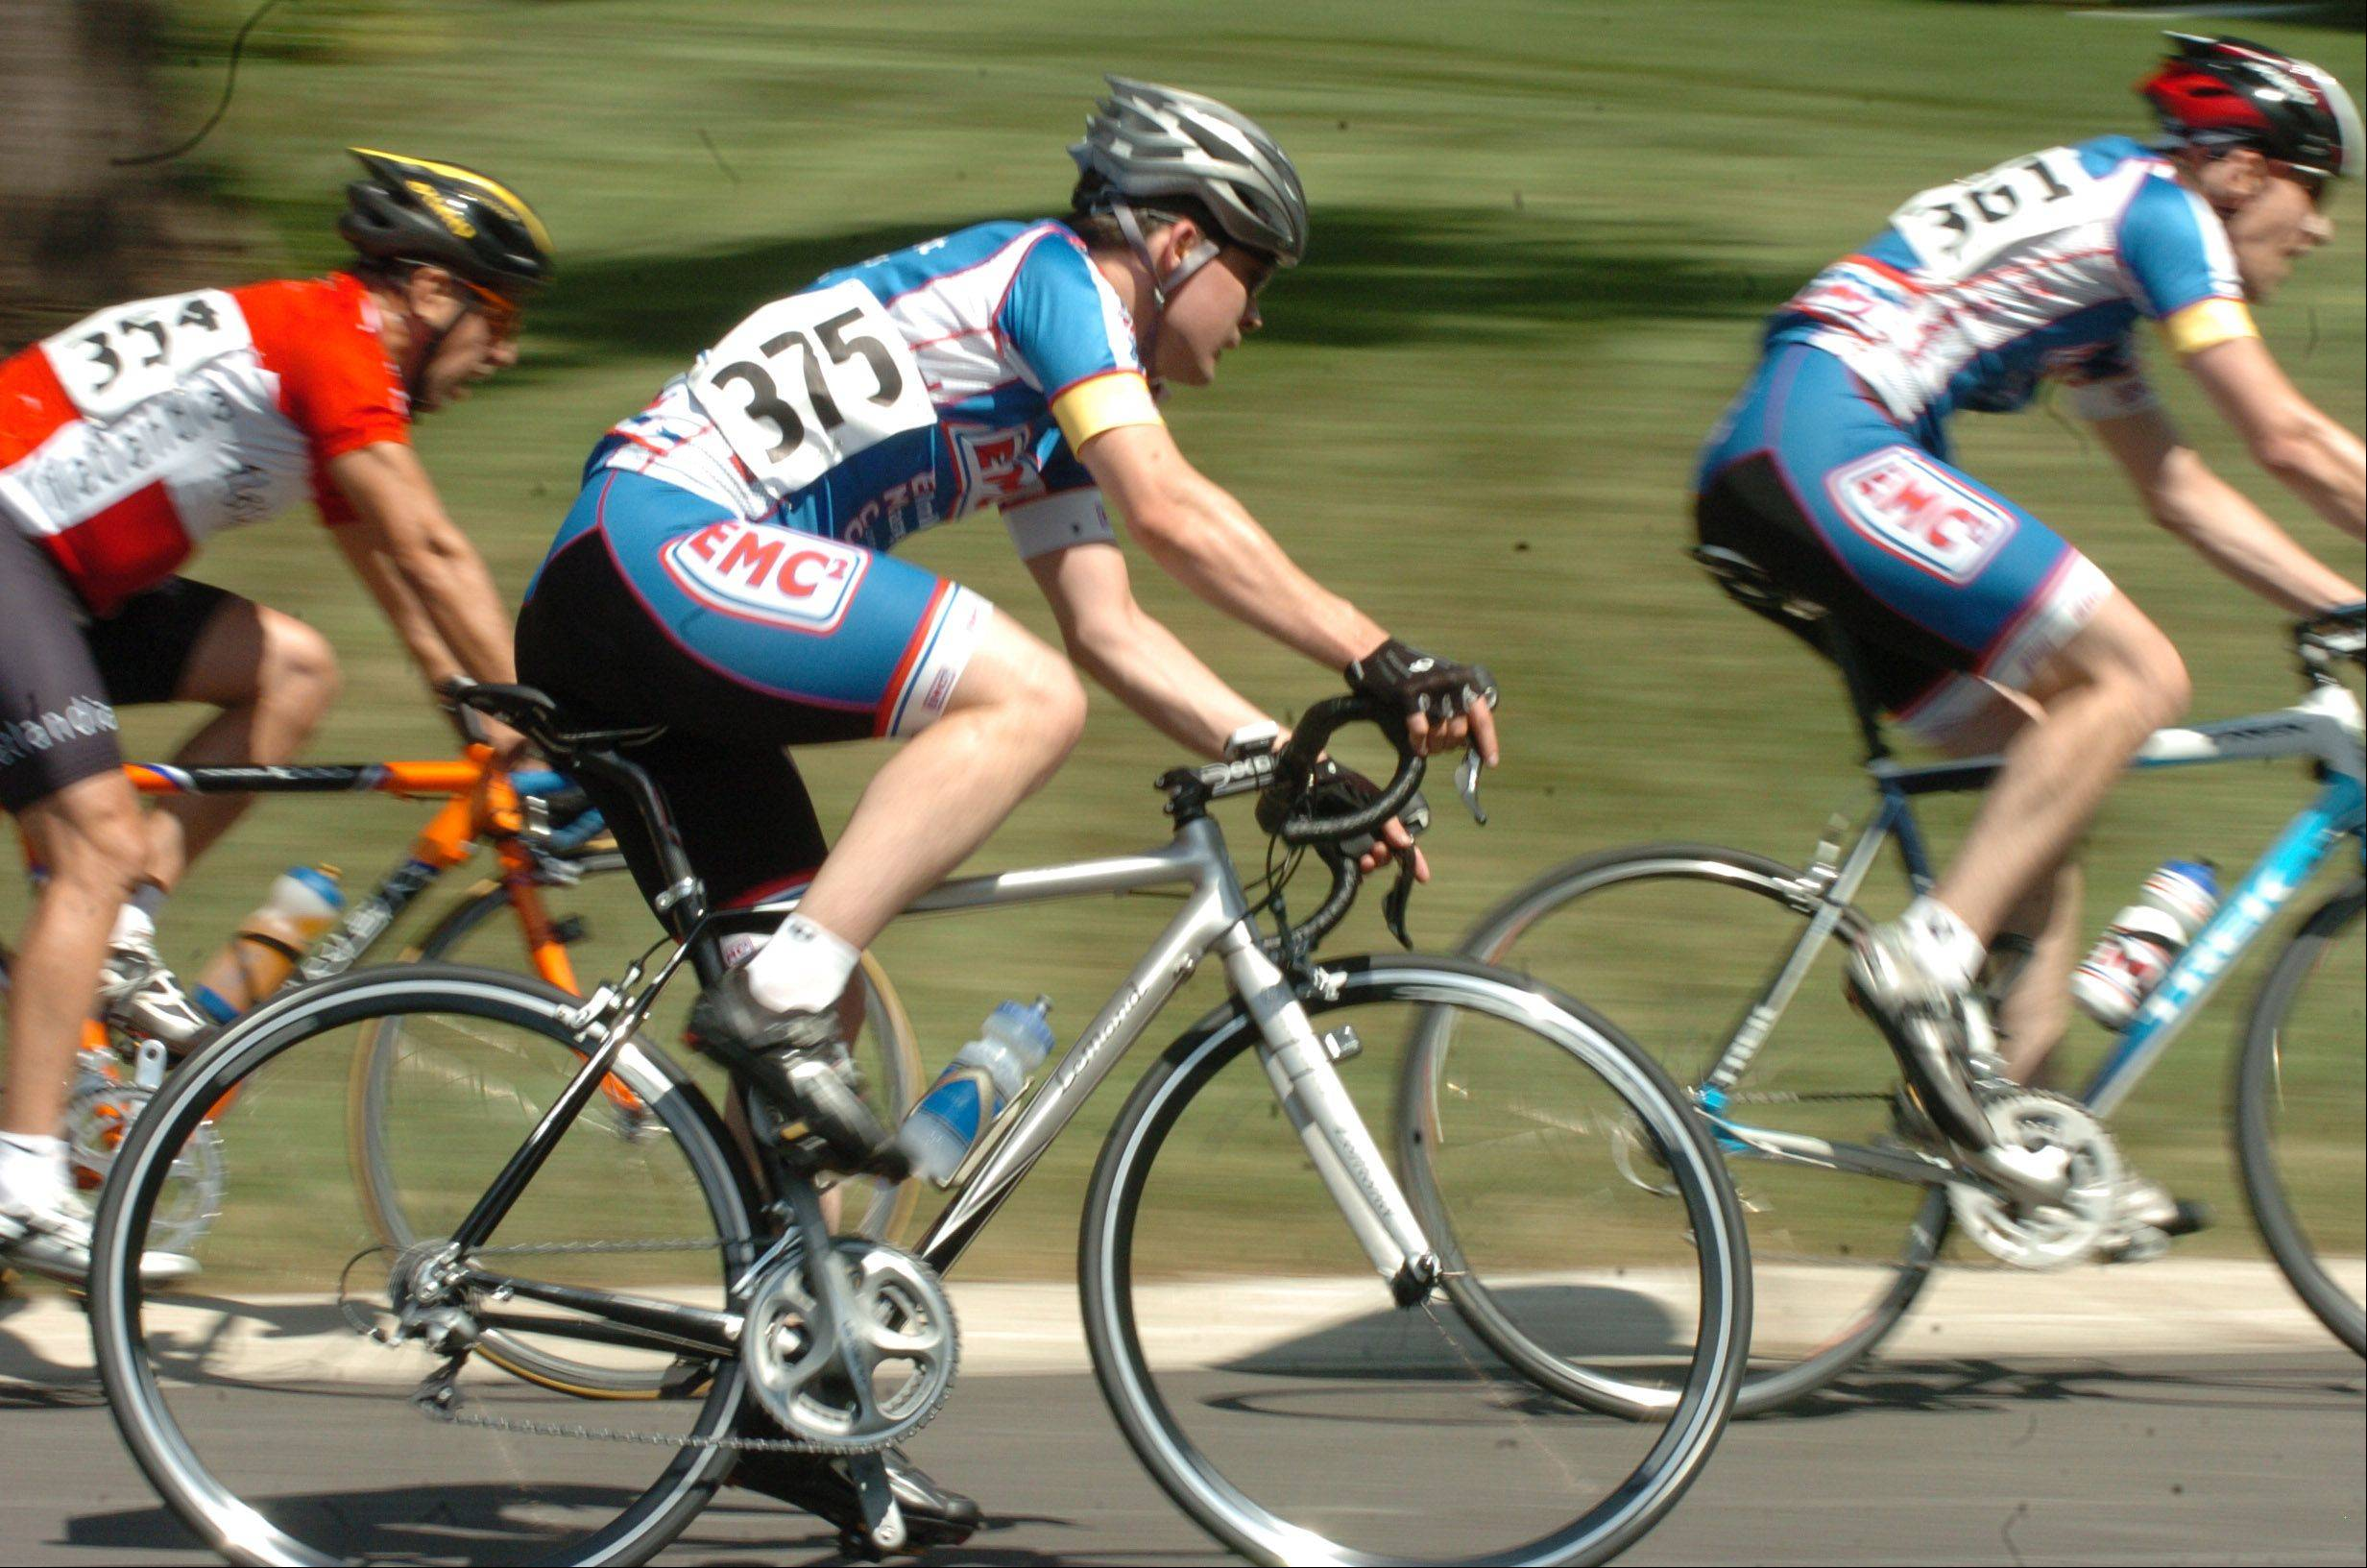 Racers in the novice Category 5 compete Saturday in the first day of the 13th annual Winfield Criterium weekend. Organizers said they expect to draw more than 1,000 spectators during the two-day event.